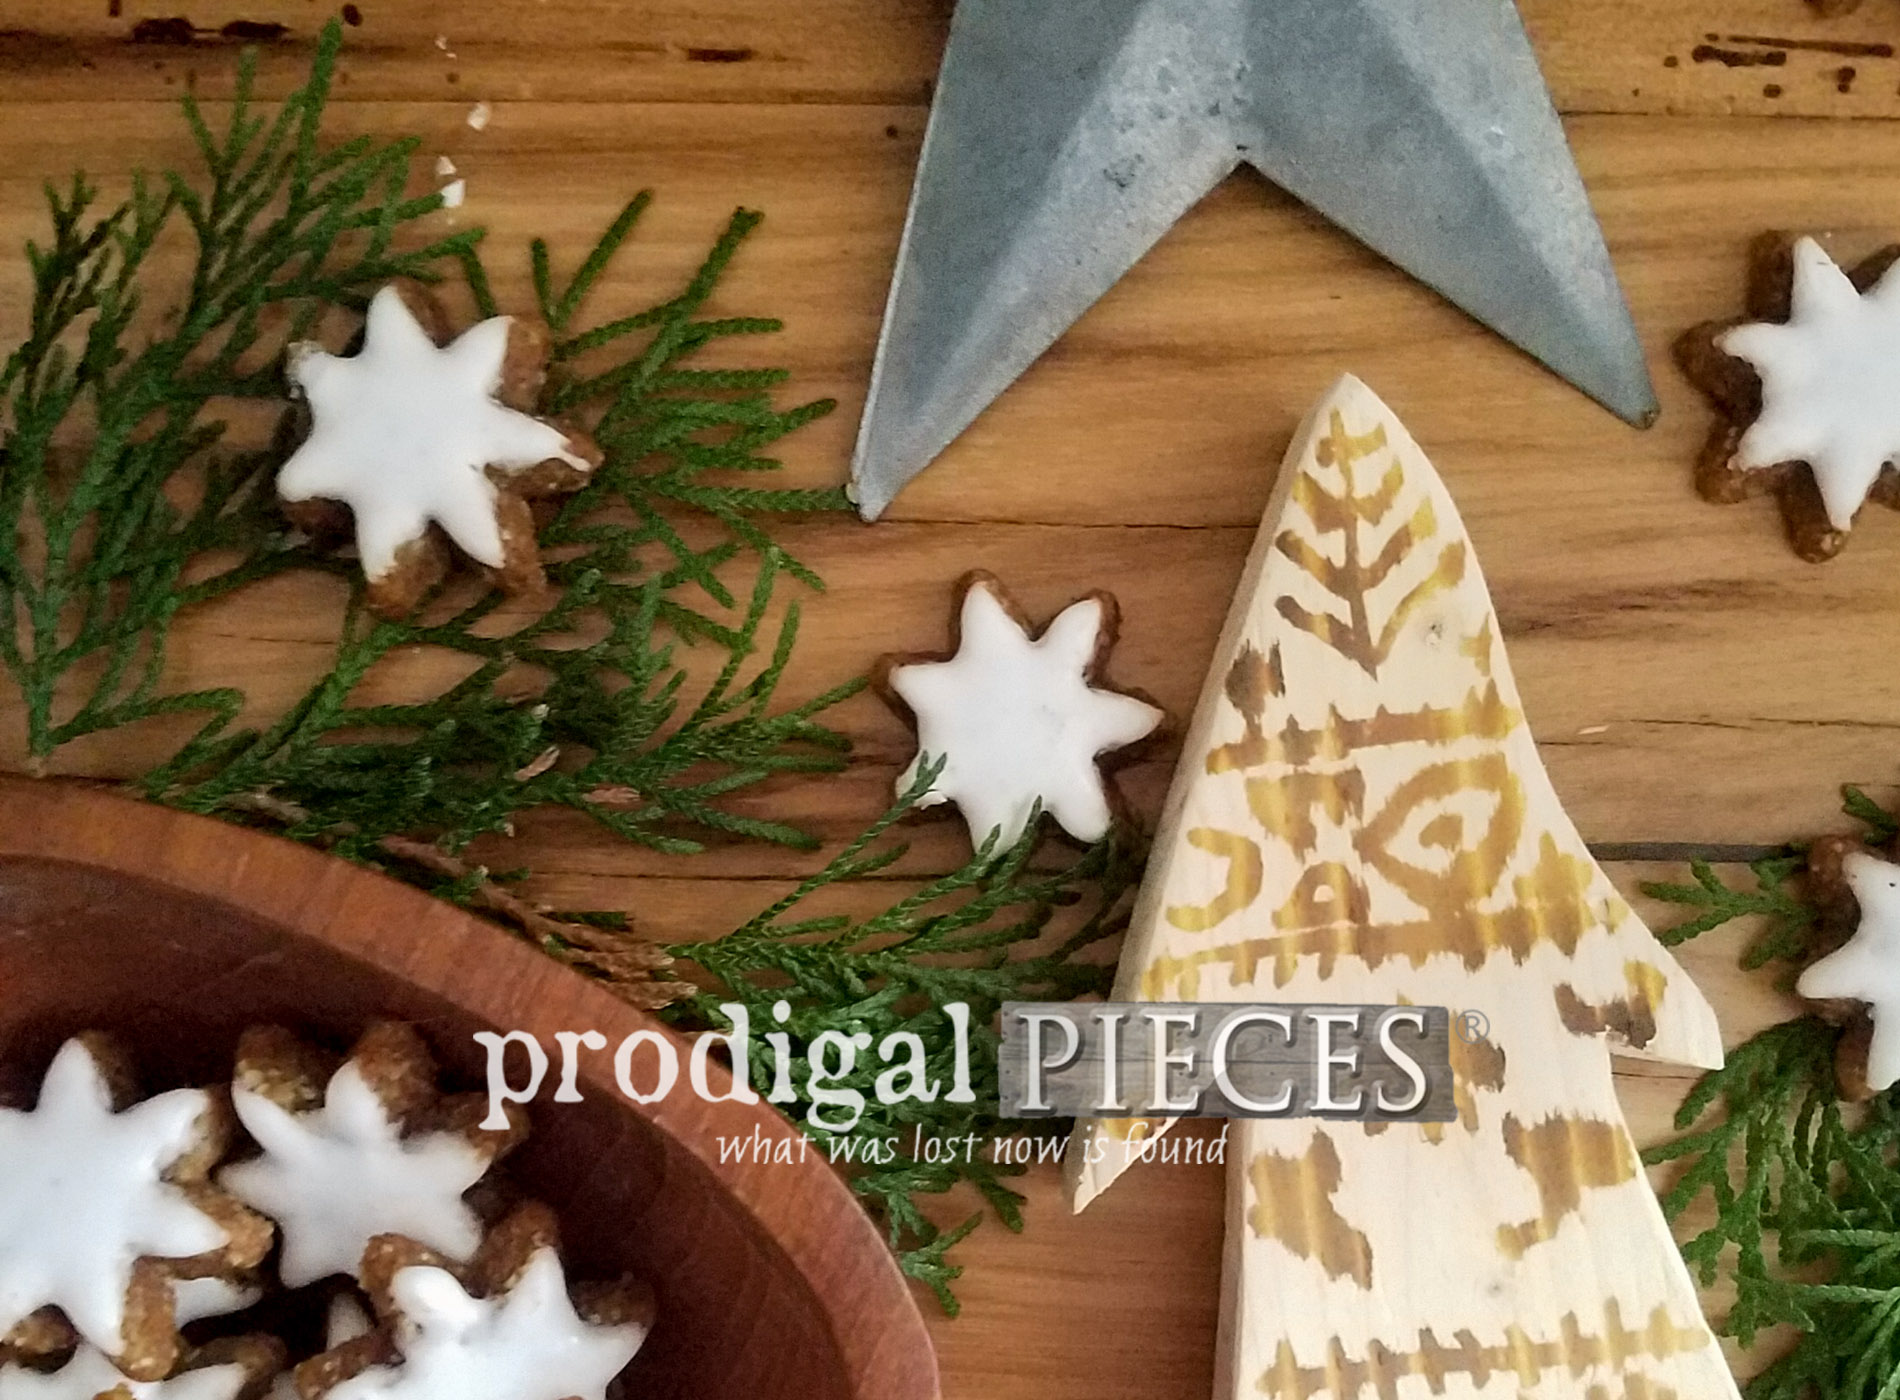 Featured Heat Gun Wood Burning by Larissa of Prodigal Pieces | prodigalpieces.com